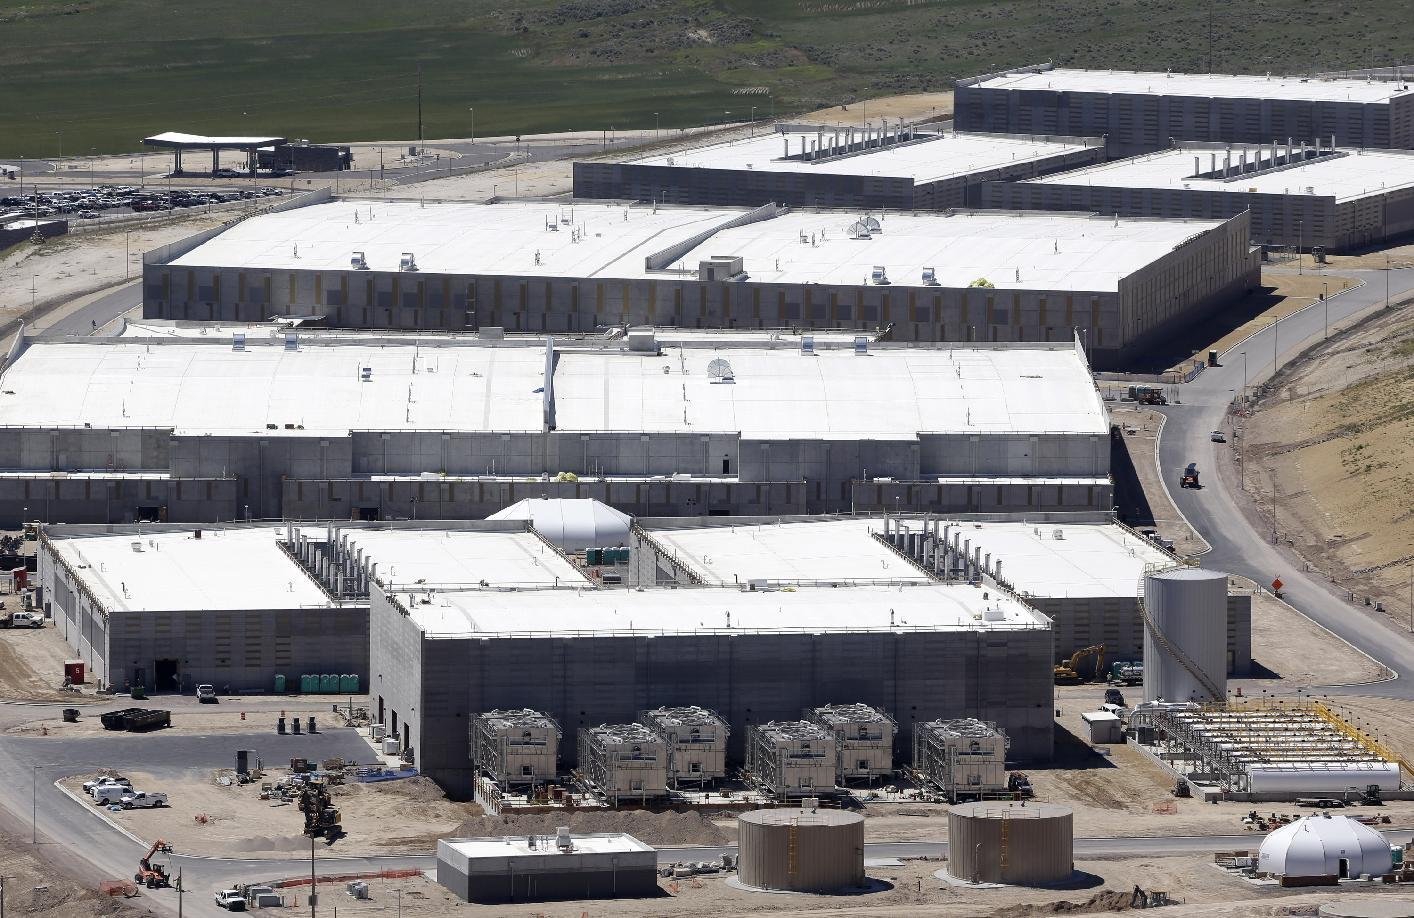 FILE - NSA's Utah Data Center is shown in this Thursday, June 6, 2013 file photo taken in Bluffdale, Utah. Newly declassified documents released Tuesday Sept. 10, 2013 tell a story of a surveillance apparatus so unwieldy and complex that nobody fully comprehended it, even as the government pointed it at the American people in the name of protecting them. Documents from the Foreign Intelligence Surveillance Court show that even senior lawyers and officials weren't sure how the system worked and didn't understand what they were told. (AP Photo/Rick Bowmer, FILE)